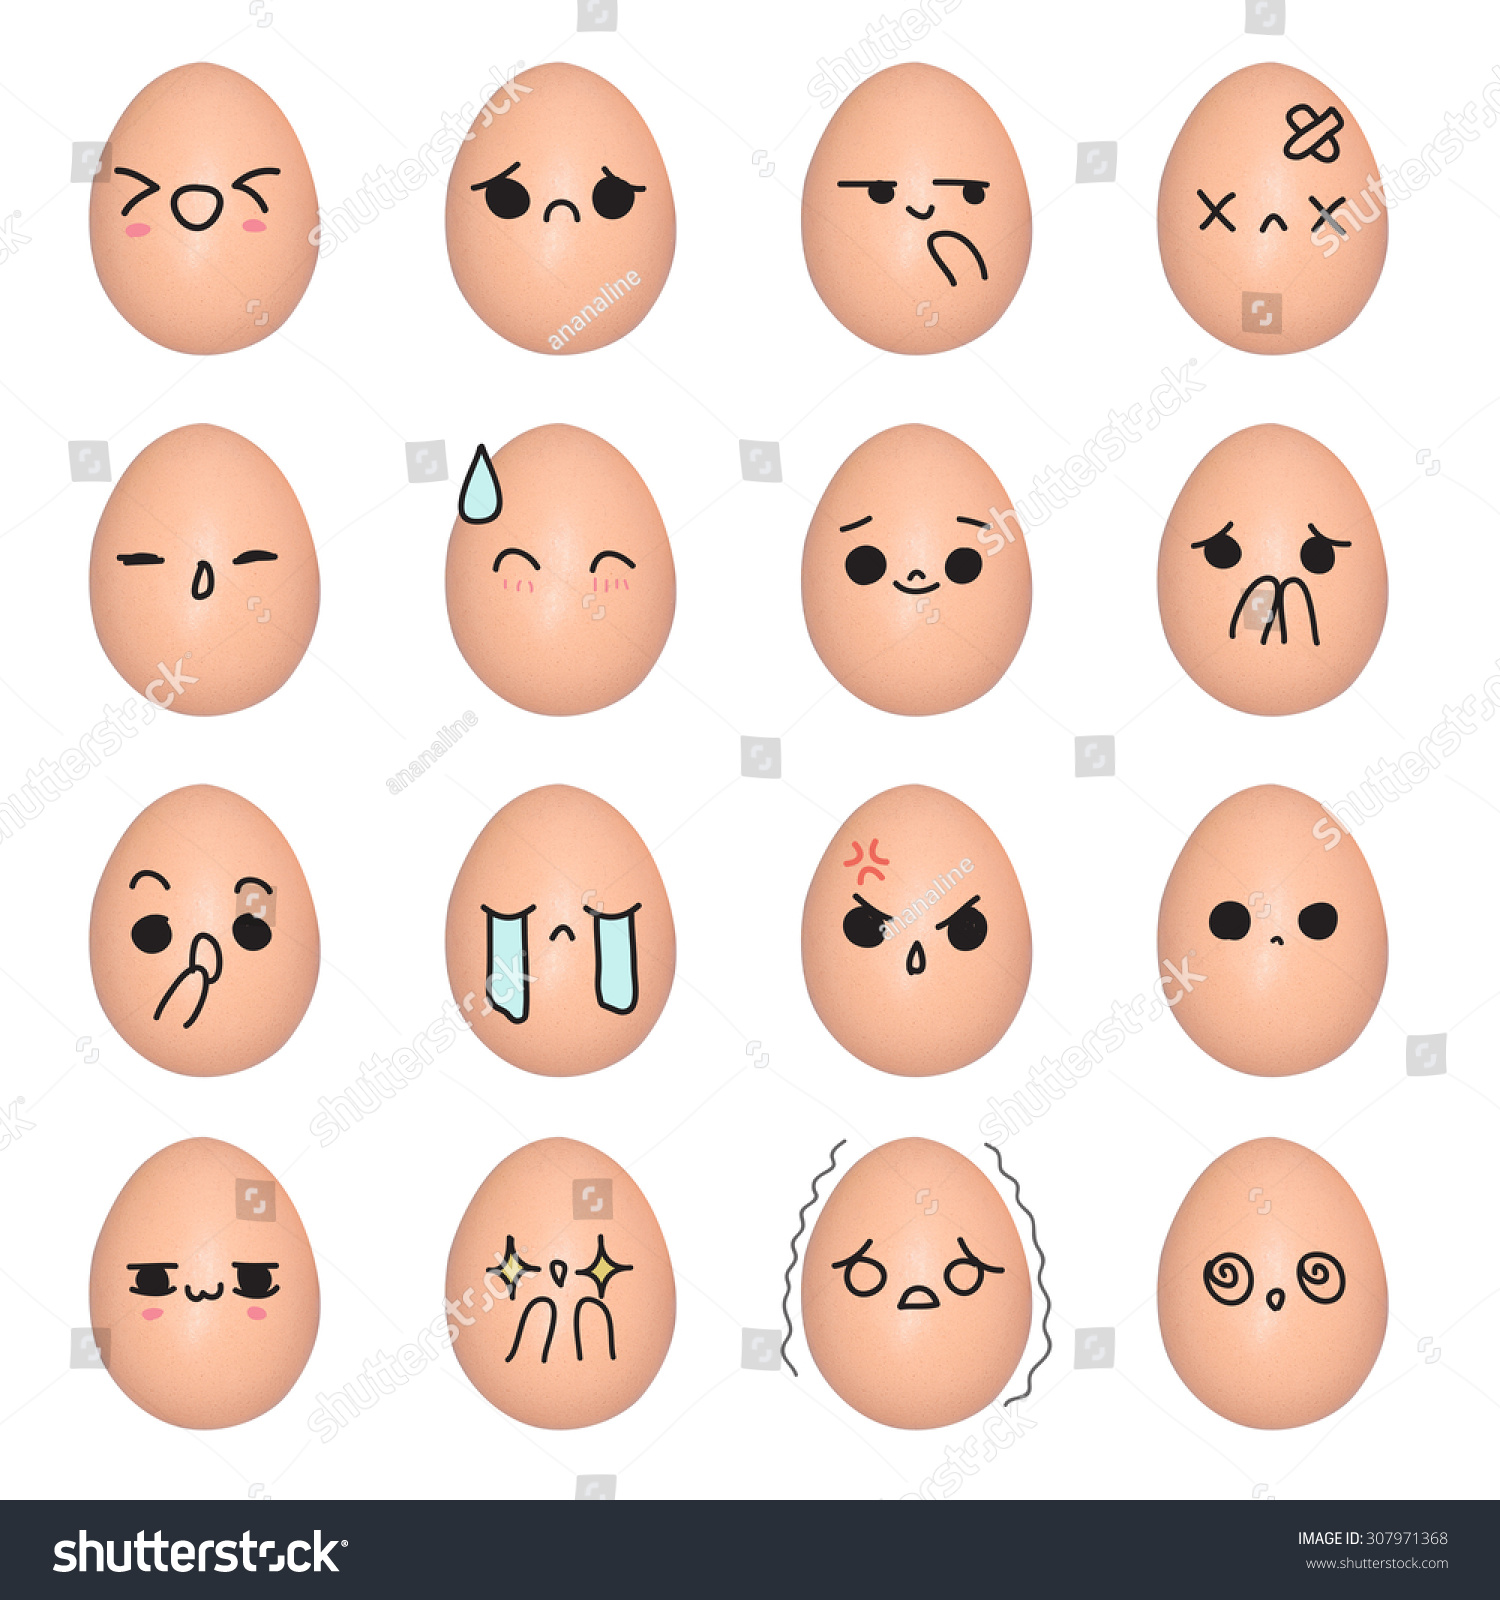 Stock Photo Egg Emoticon